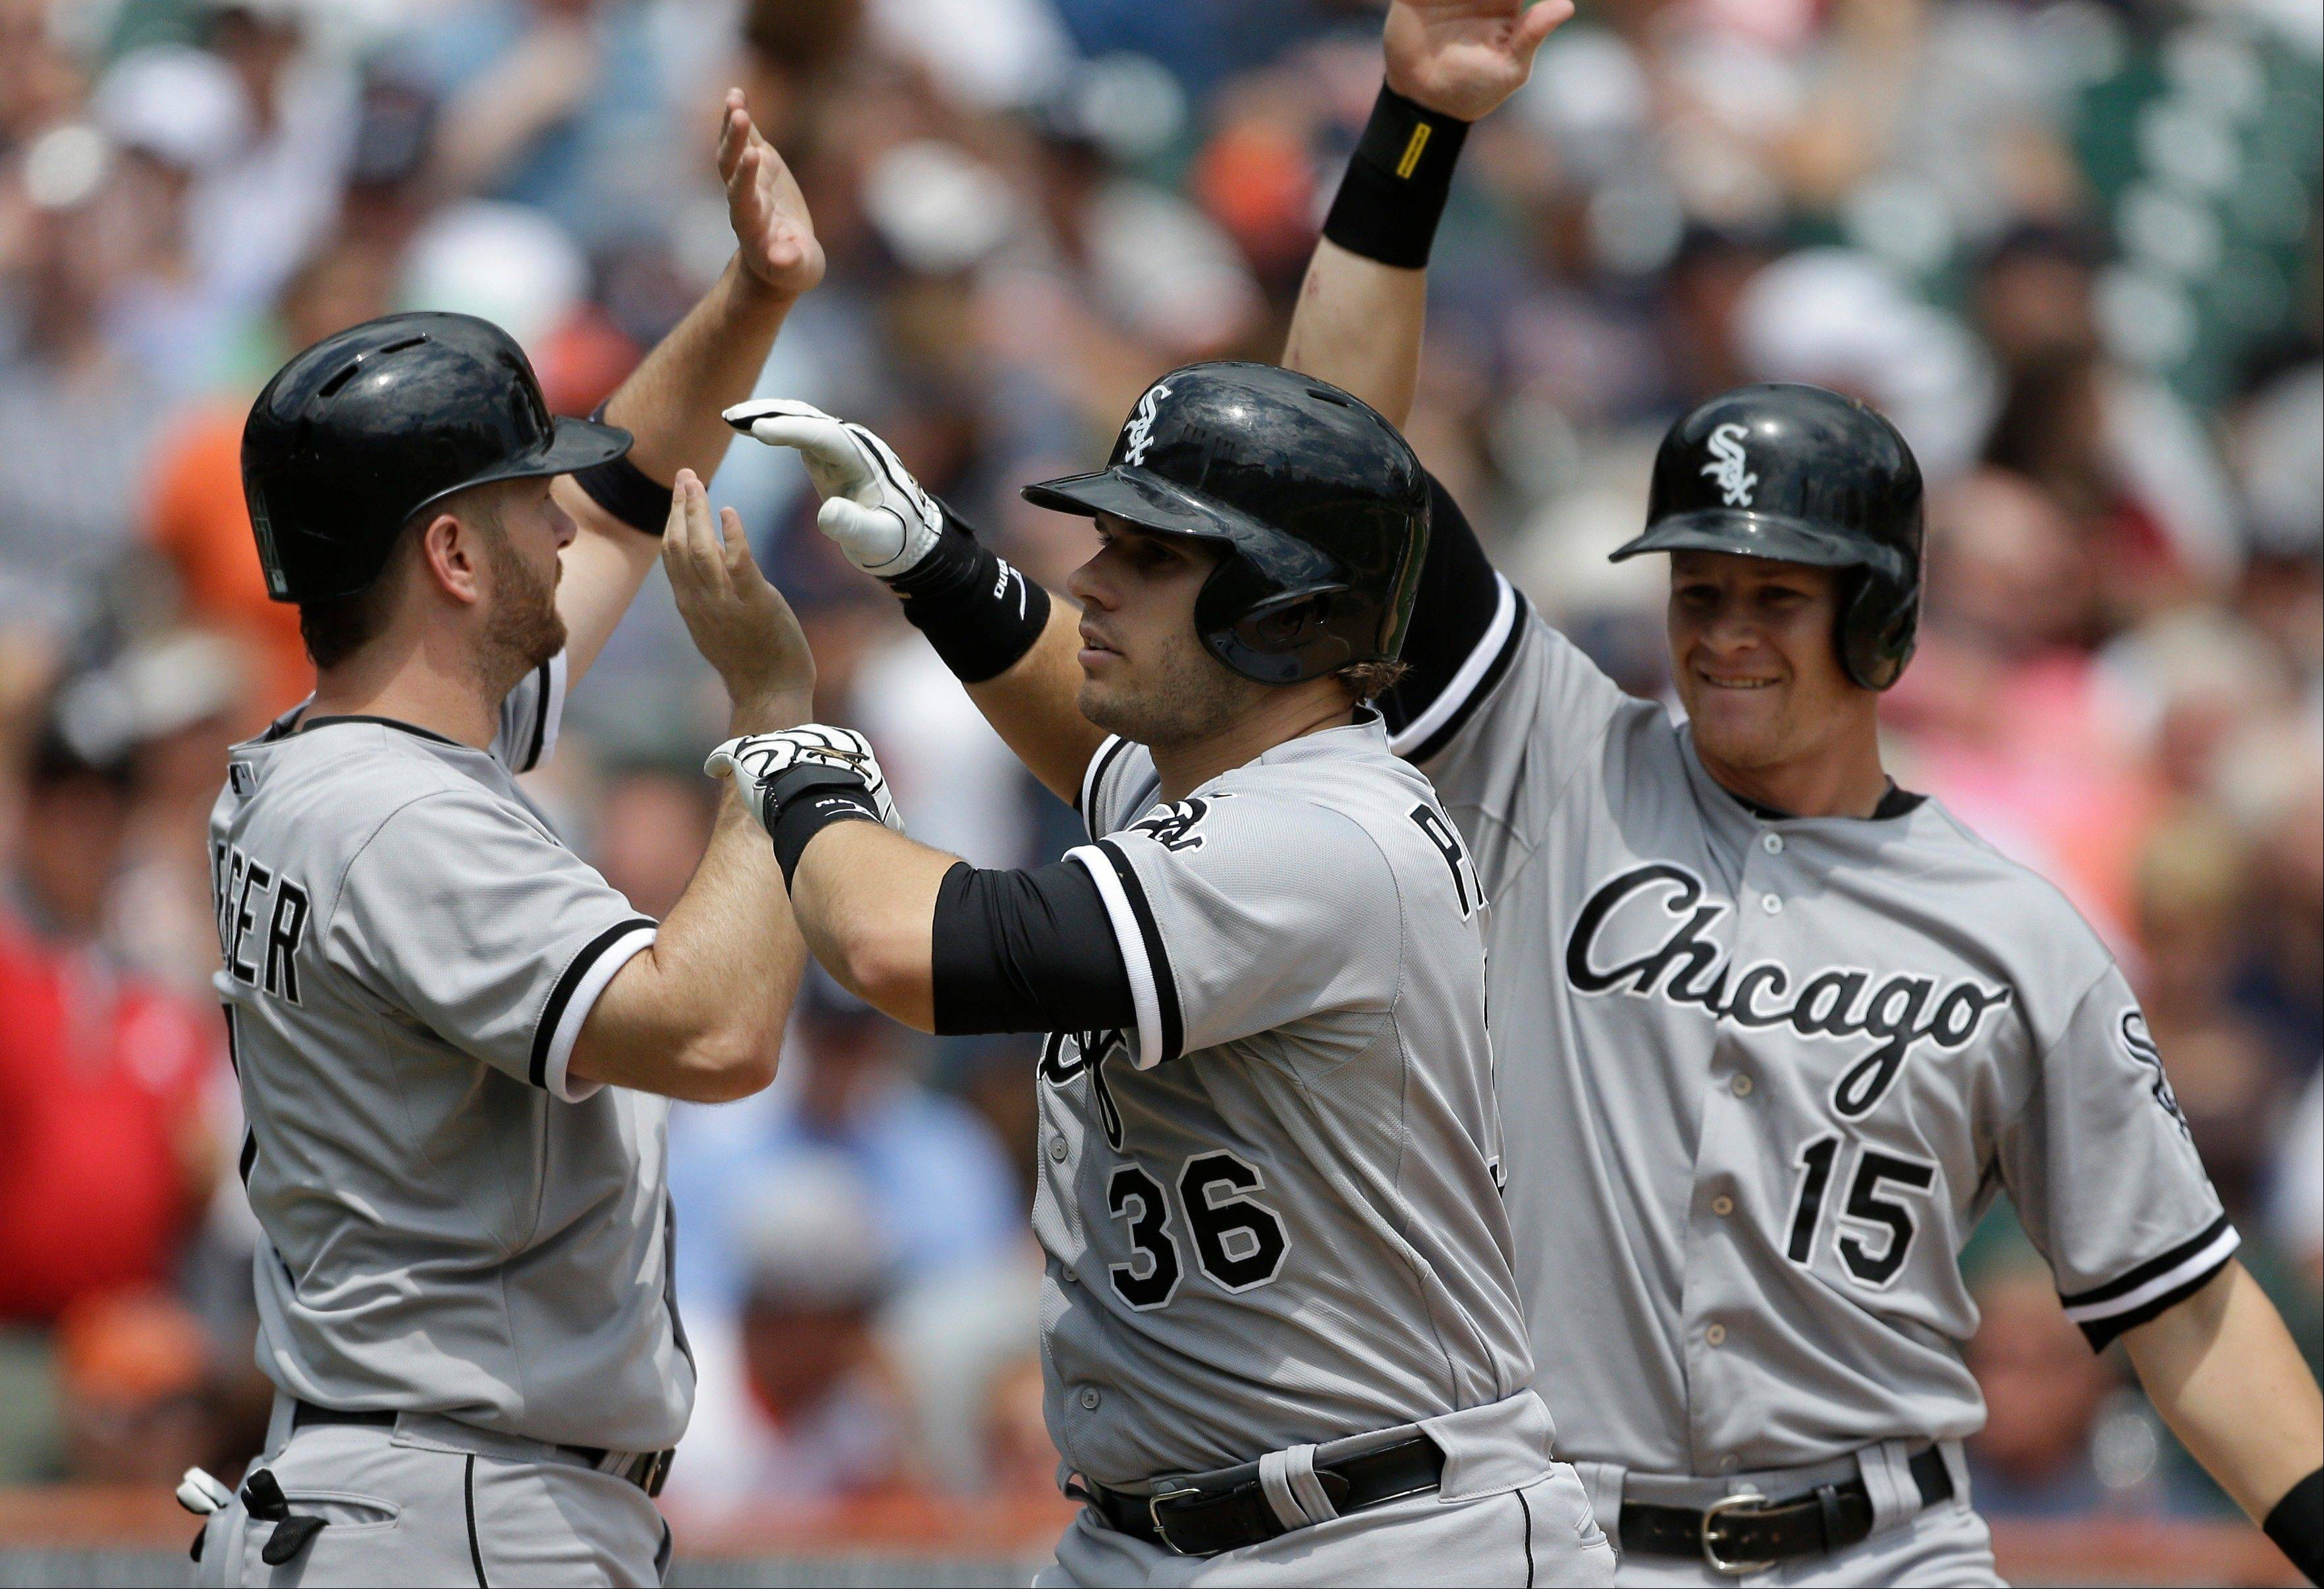 Josh Phegley, (36) is congratulated by teammates Jeff Keppinger, left, and Gordon Beckham (15) after his grand slam during the sixth inning of a baseball game against the Detroit Tigers in Detroit, Thursday, July 11, 2013.